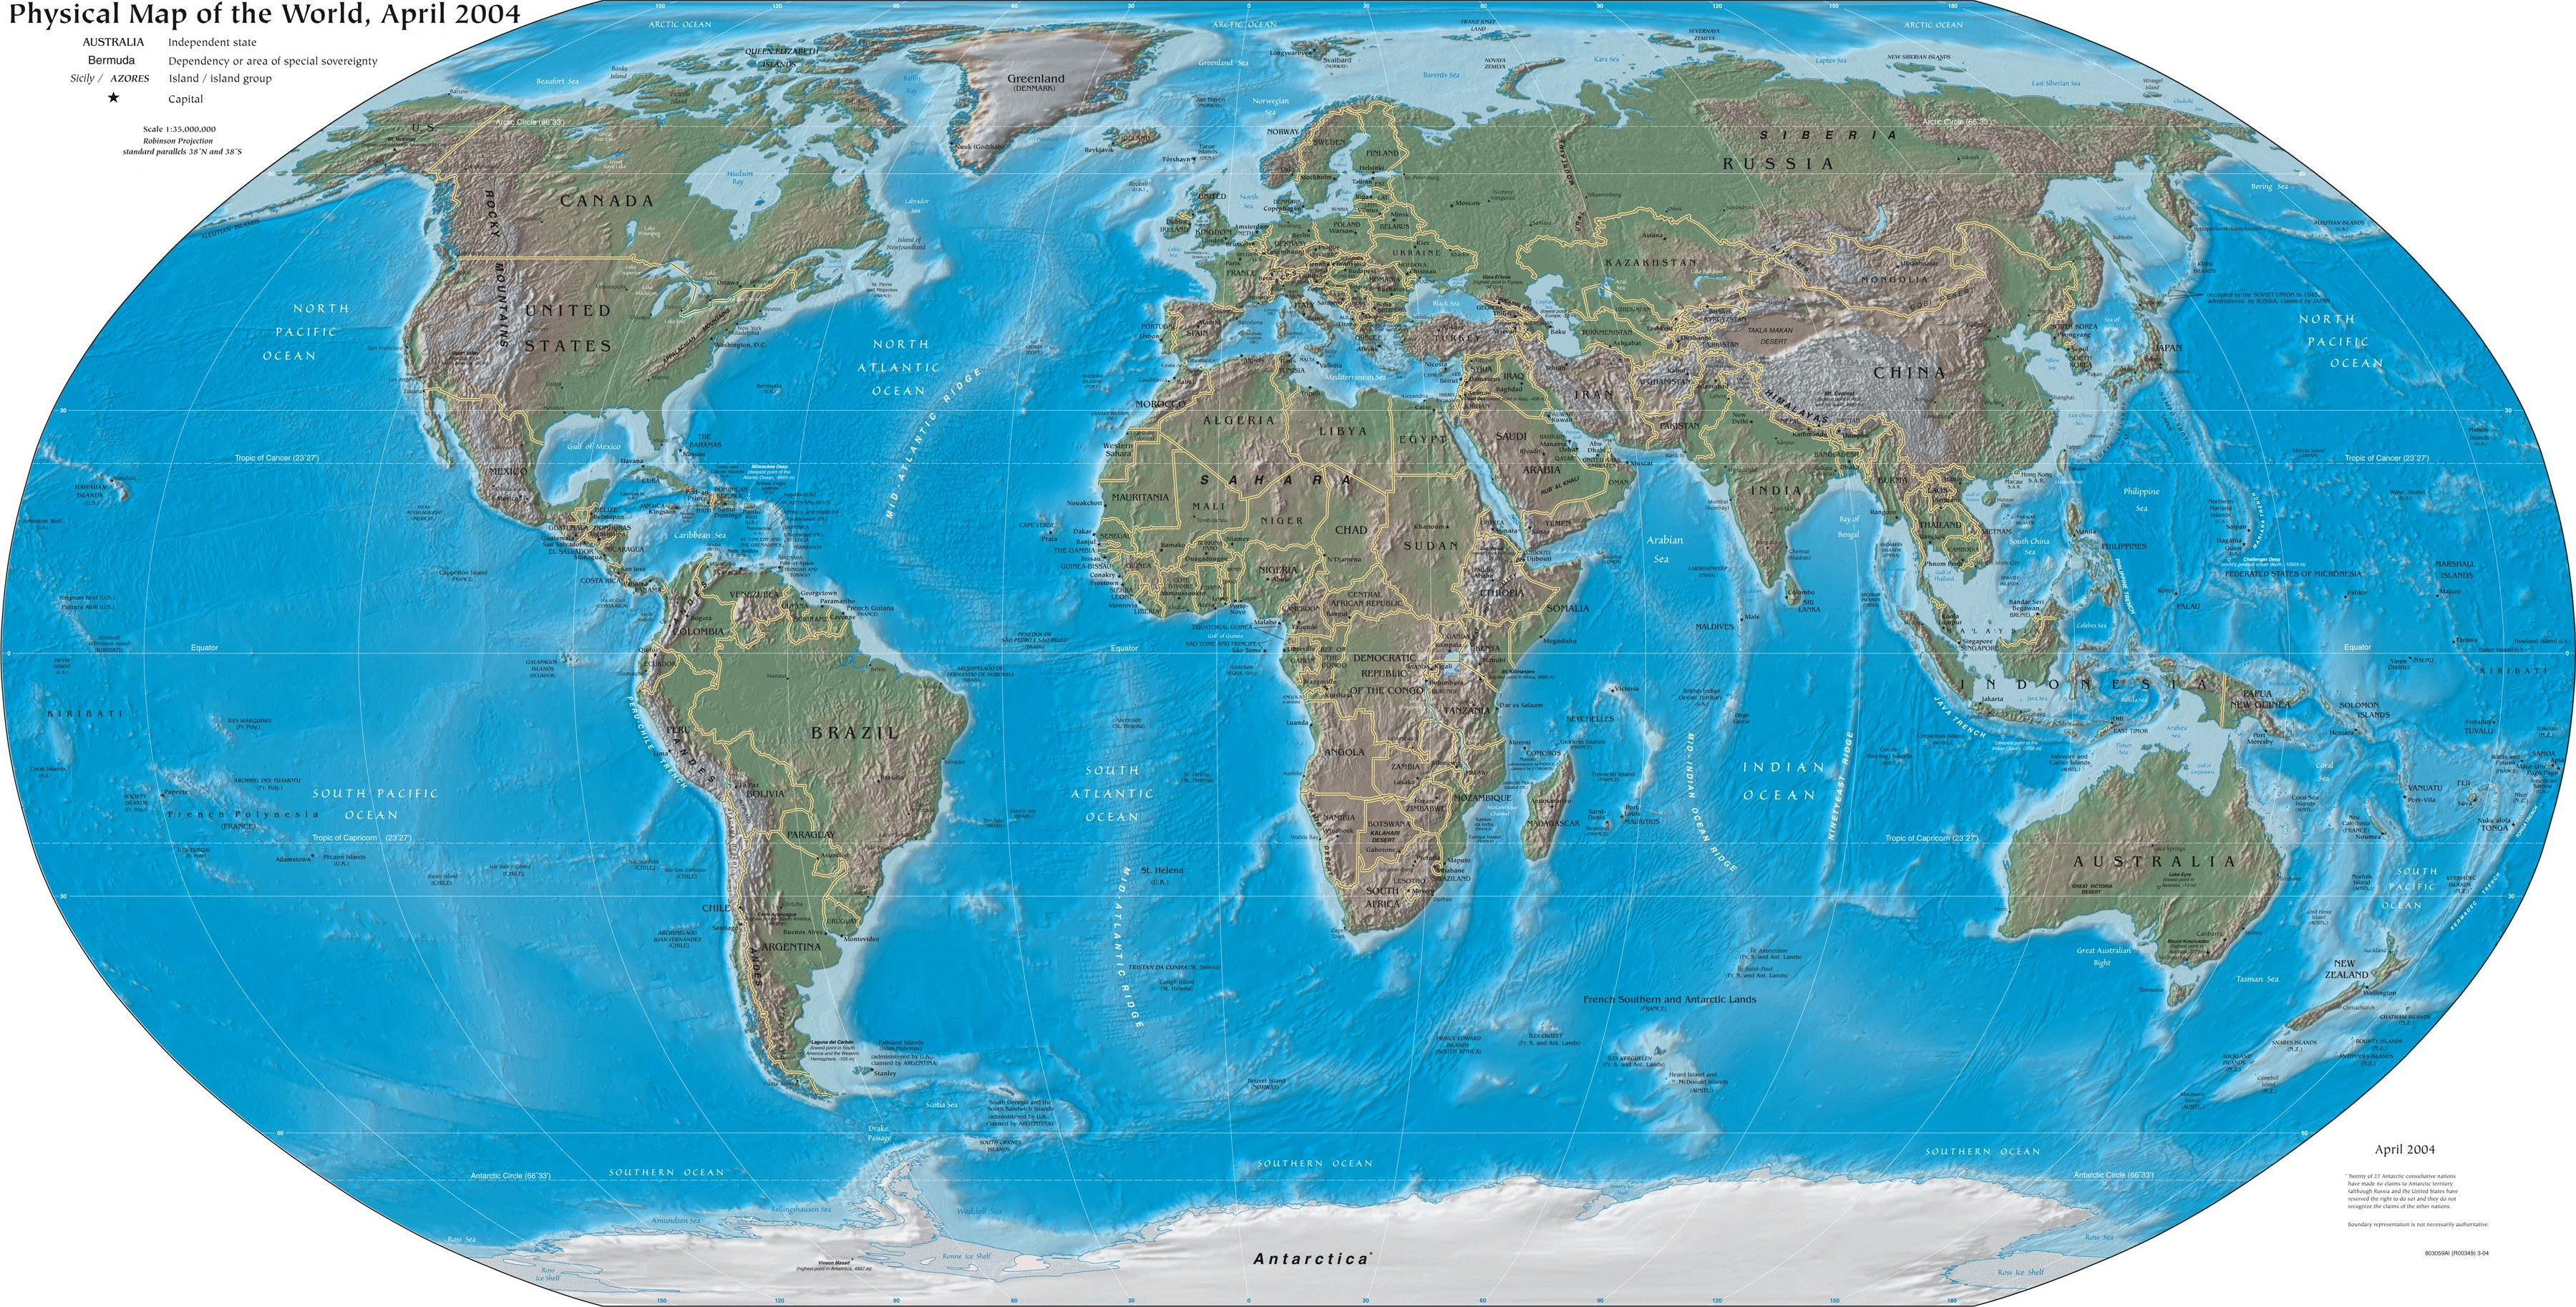 World-map-2004-cia-factbook-large-1_7m-whitespace-removed.jpg